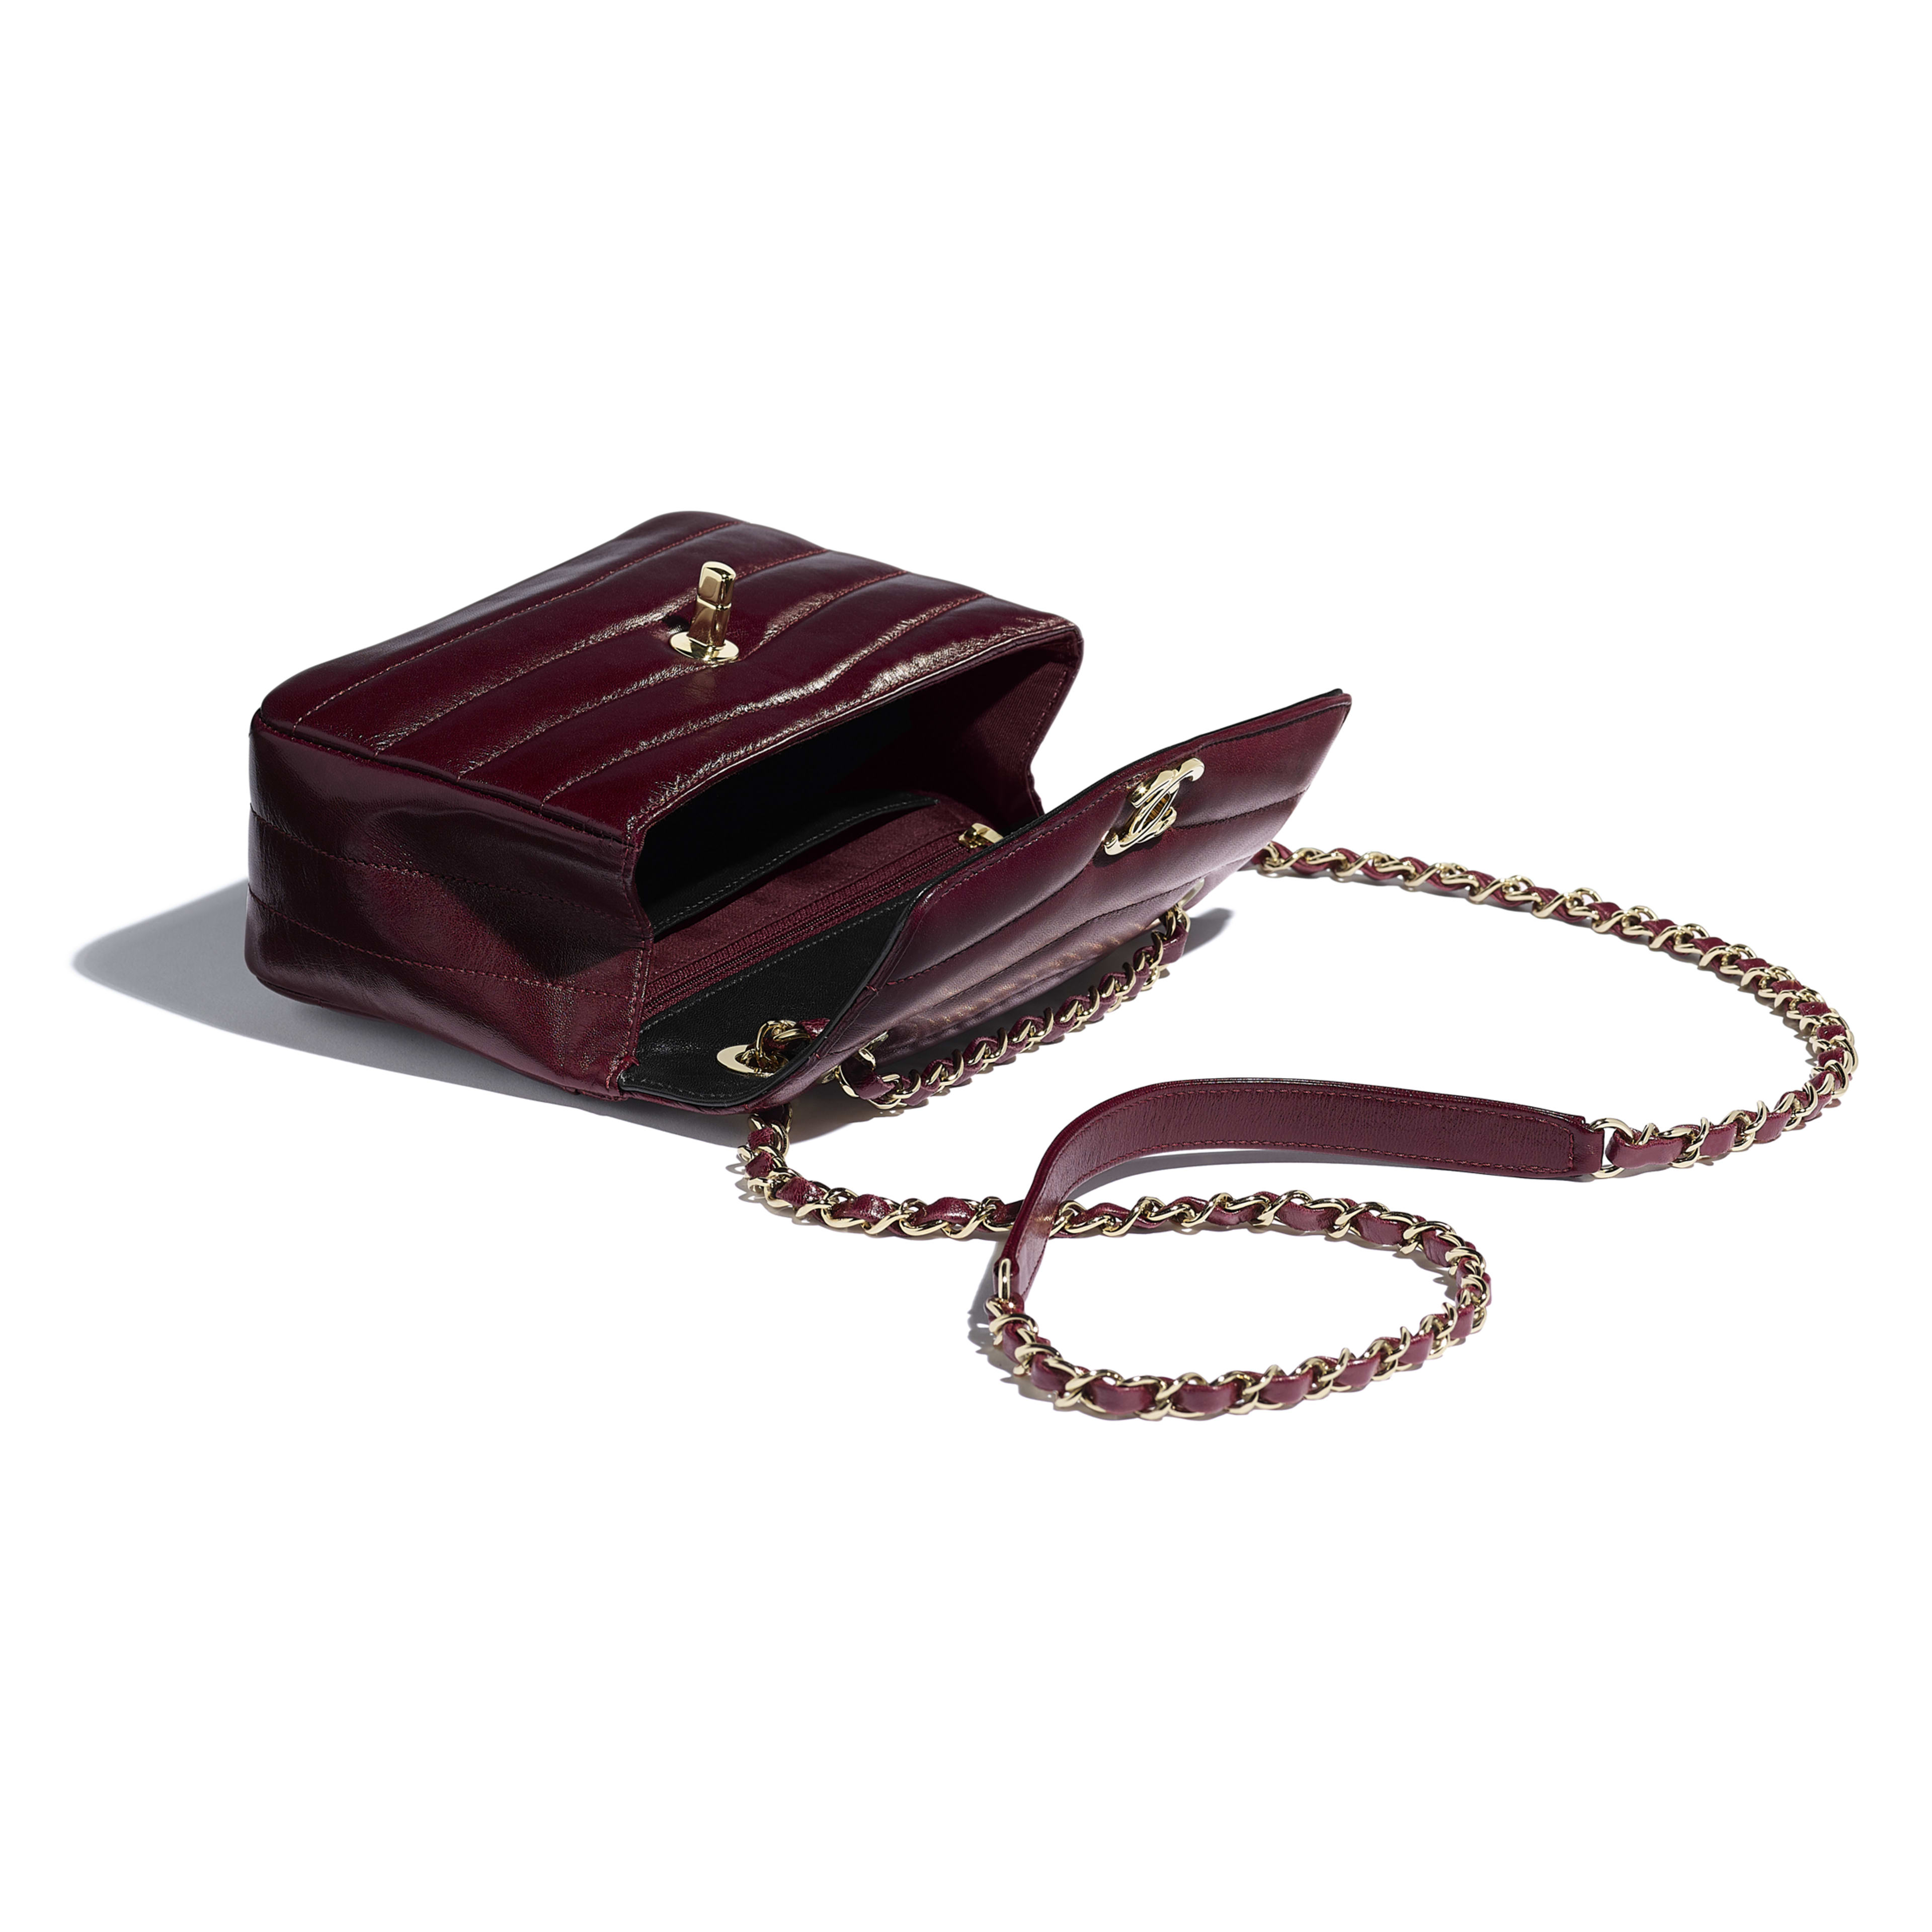 Flap Bag - Burgundy - Lambskin - Other view - see full sized version